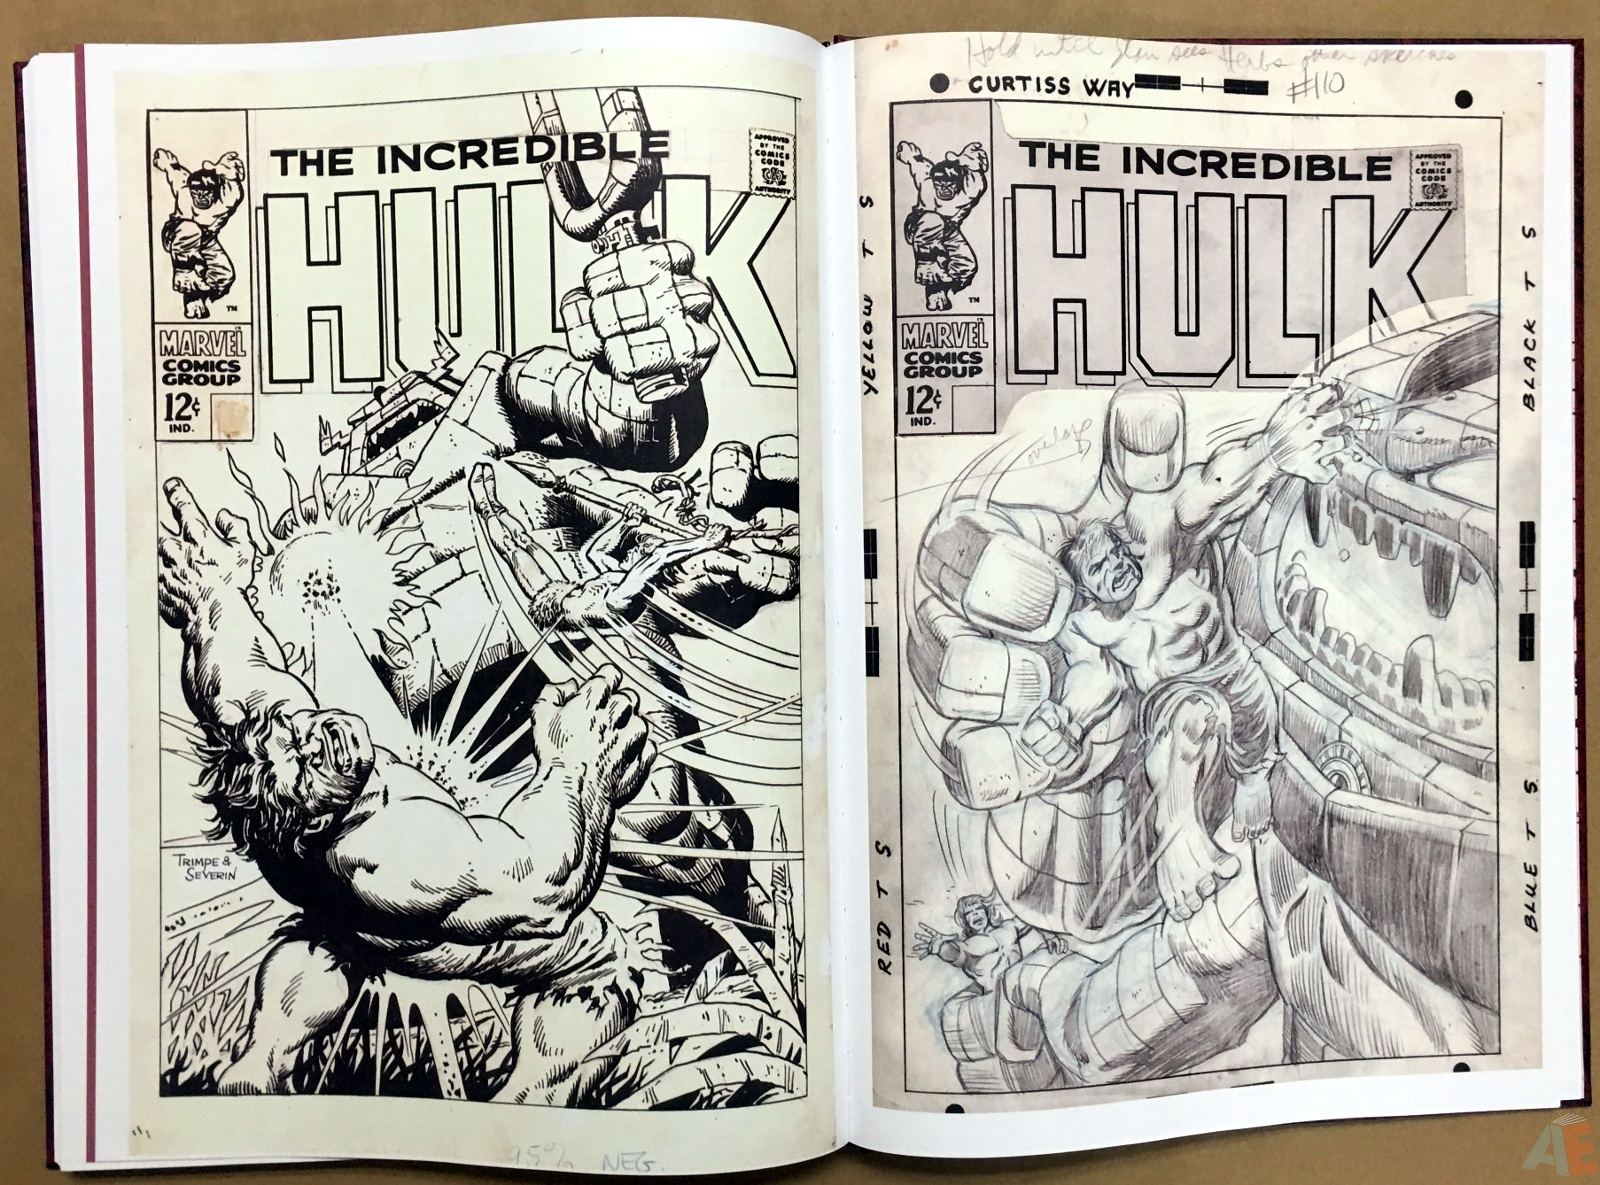 Herb Trimpe's The Incredible Hulk Artist's Edition 44